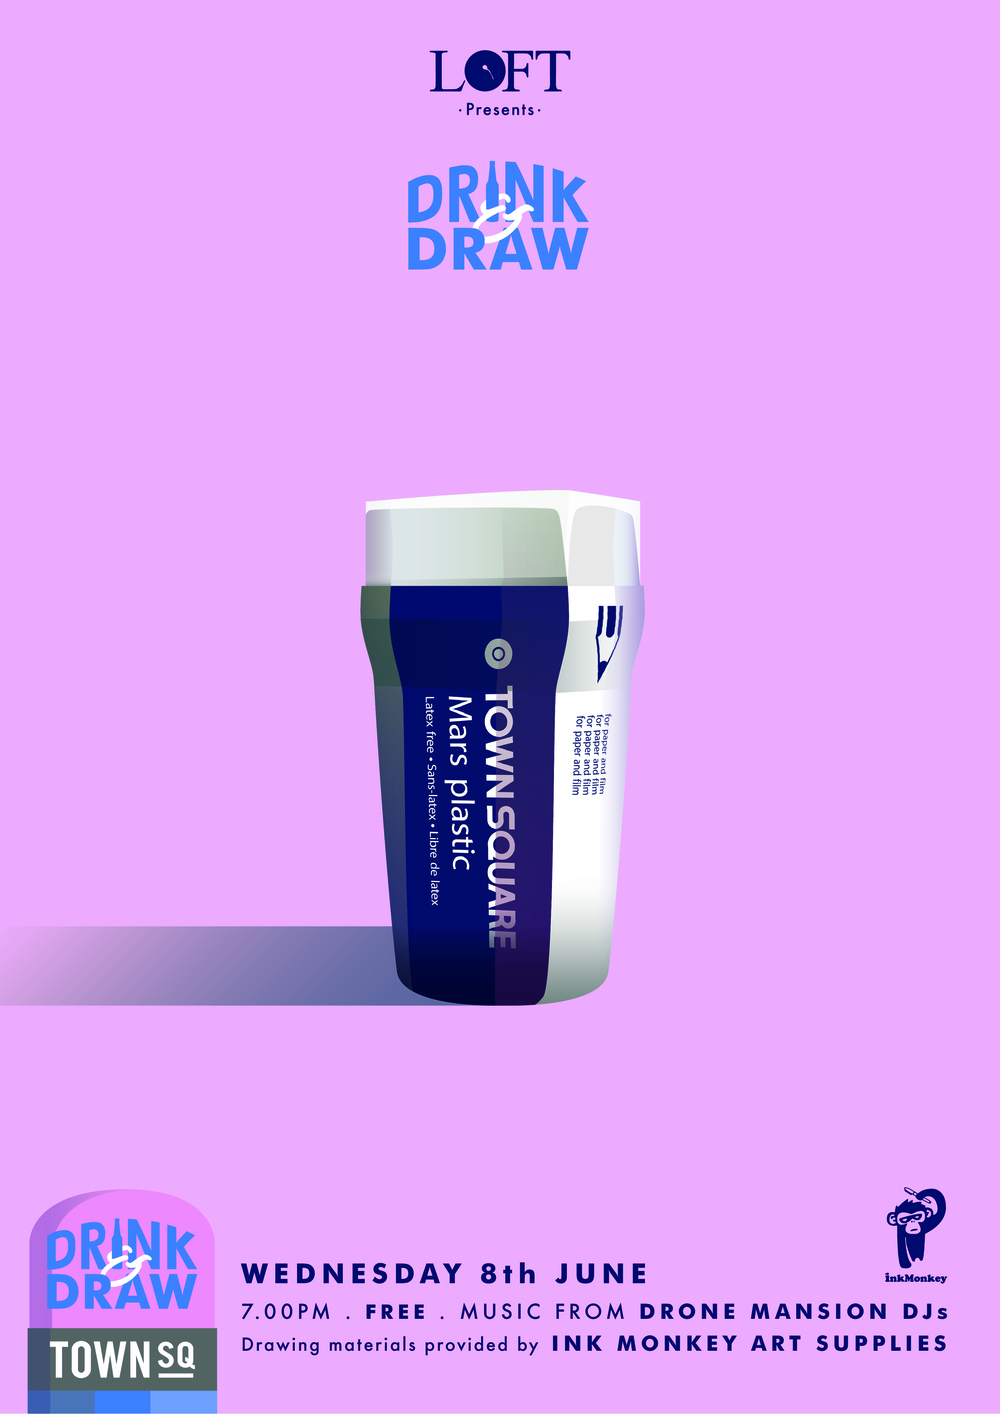 drinkanddraw1.jpeg